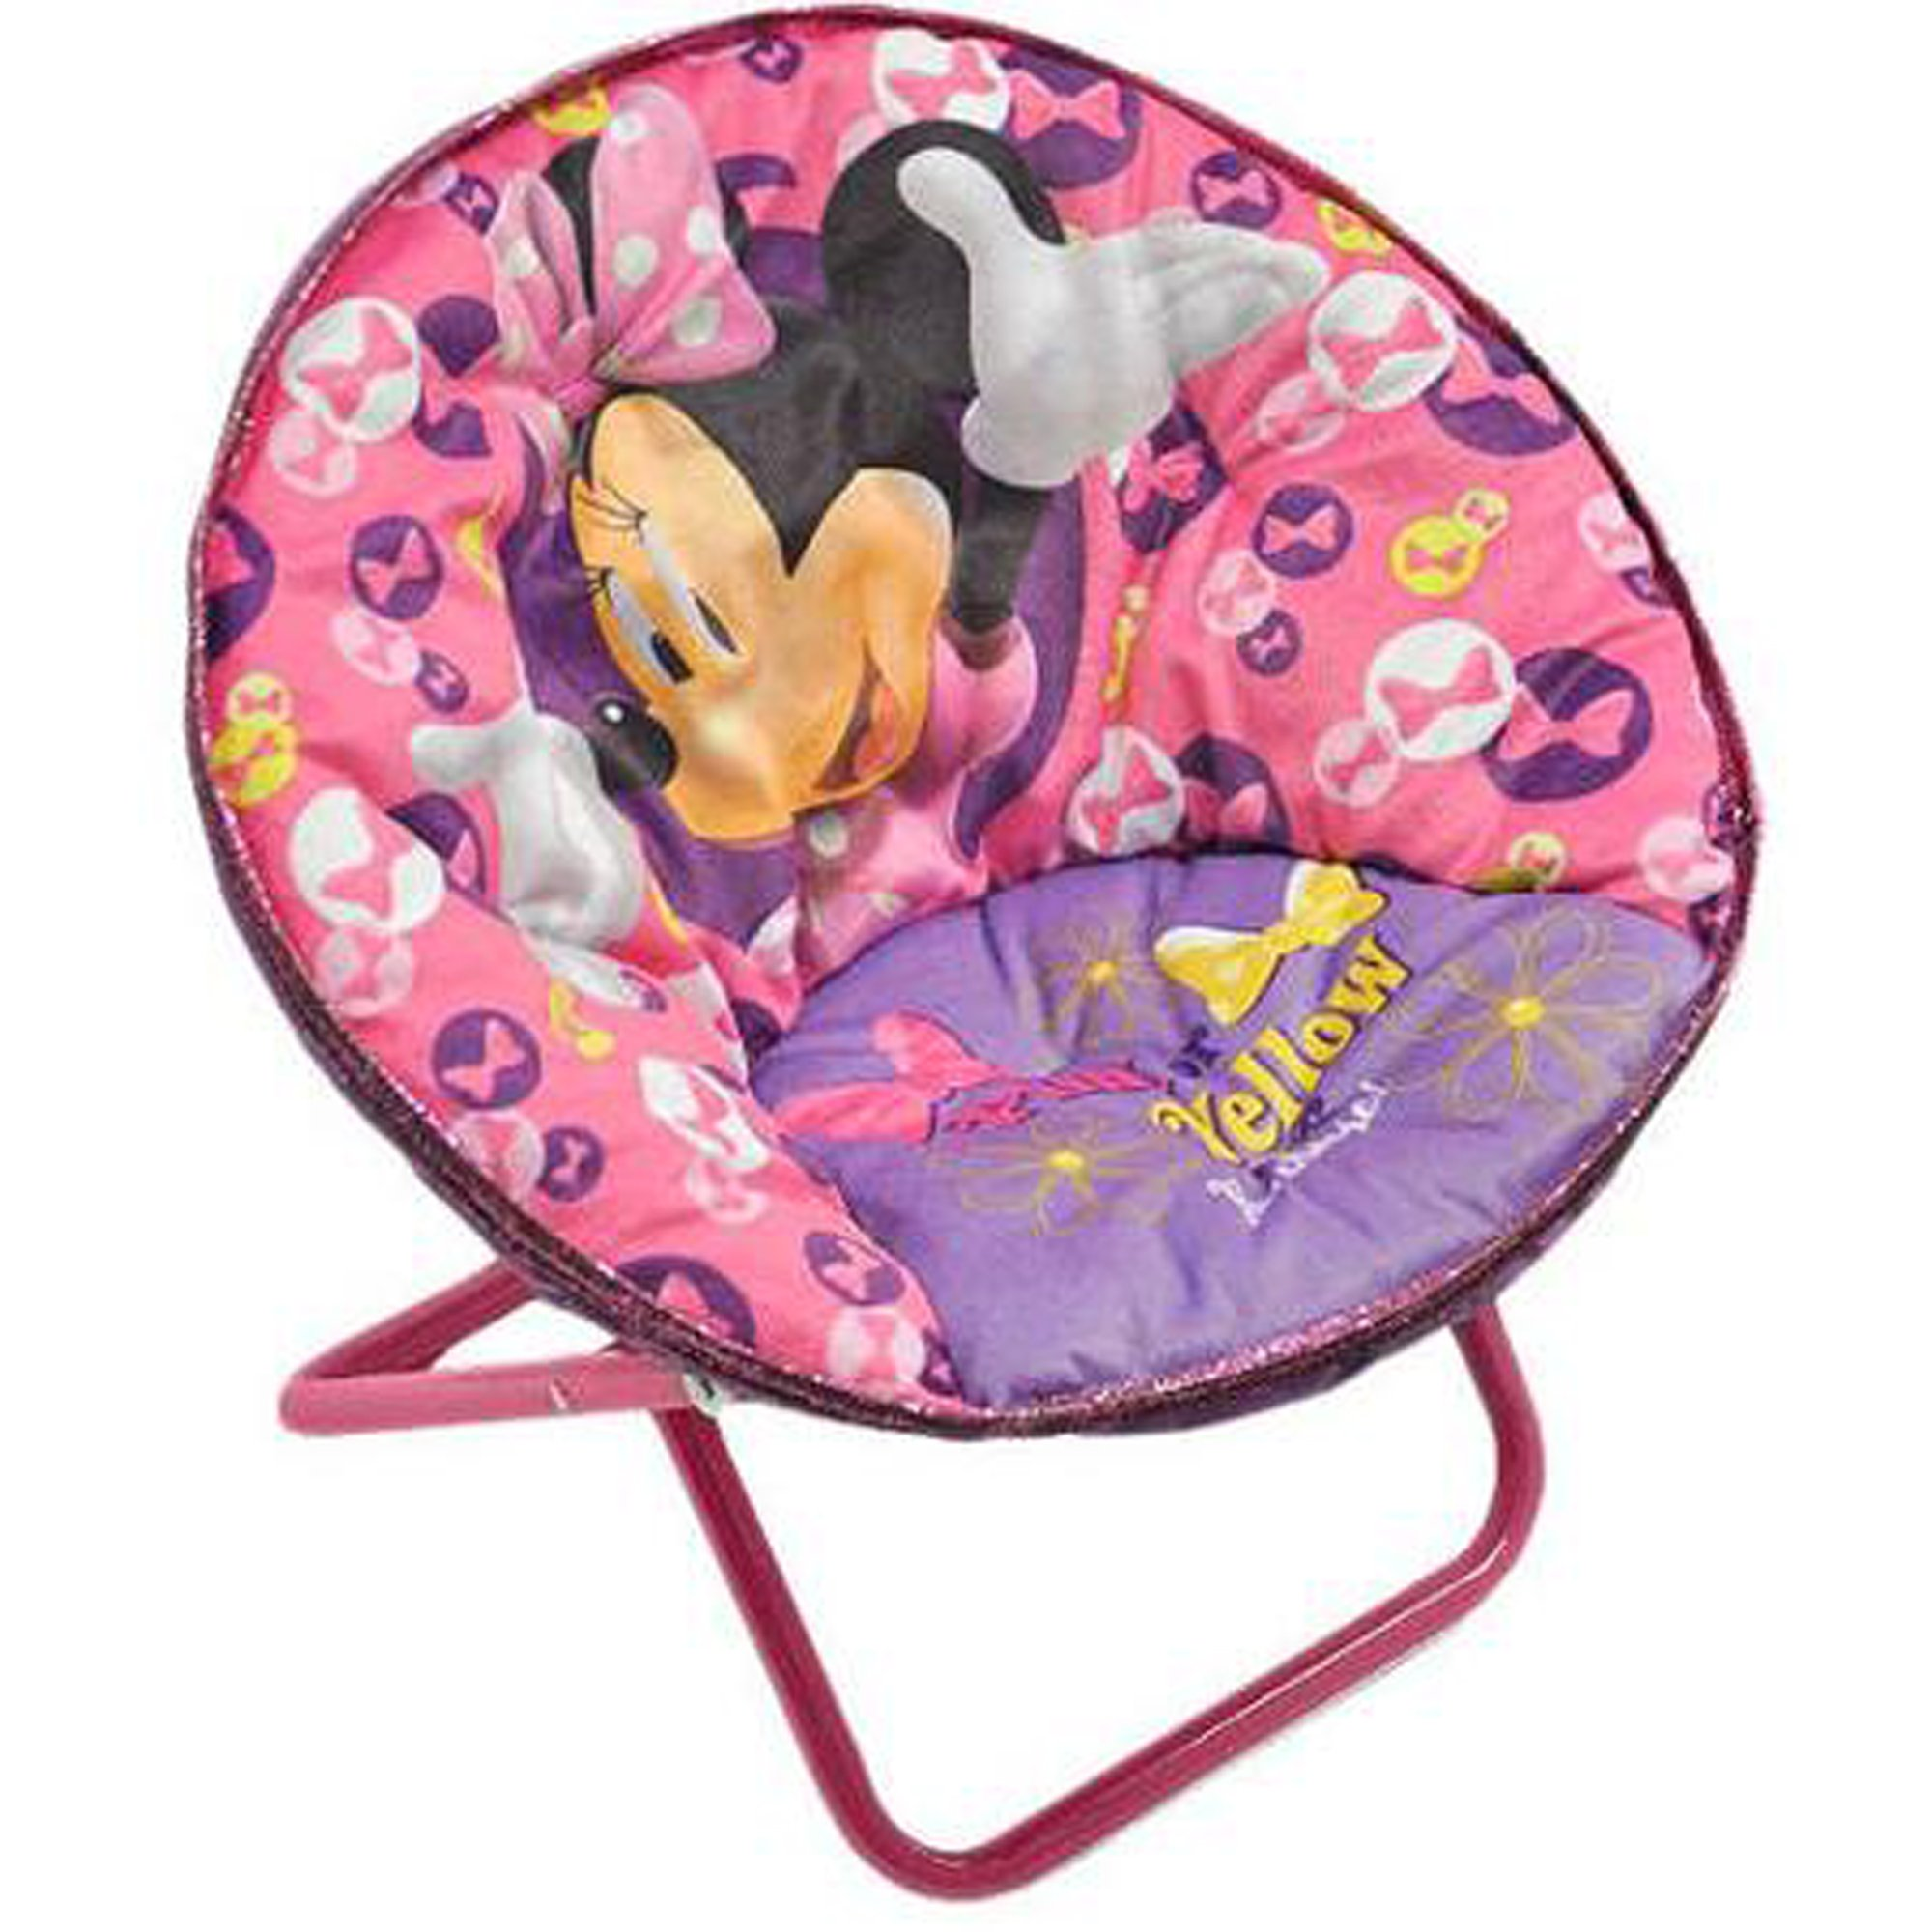 Minnie Mouse Disney Saucers Chair Pink Toddler Kids Seat Portable Character Comfortable Saucer Shape Sturdy Metal Frame Polyester Cushioned Seat Playroom Easy Storage Bedroom (Pack of Two)